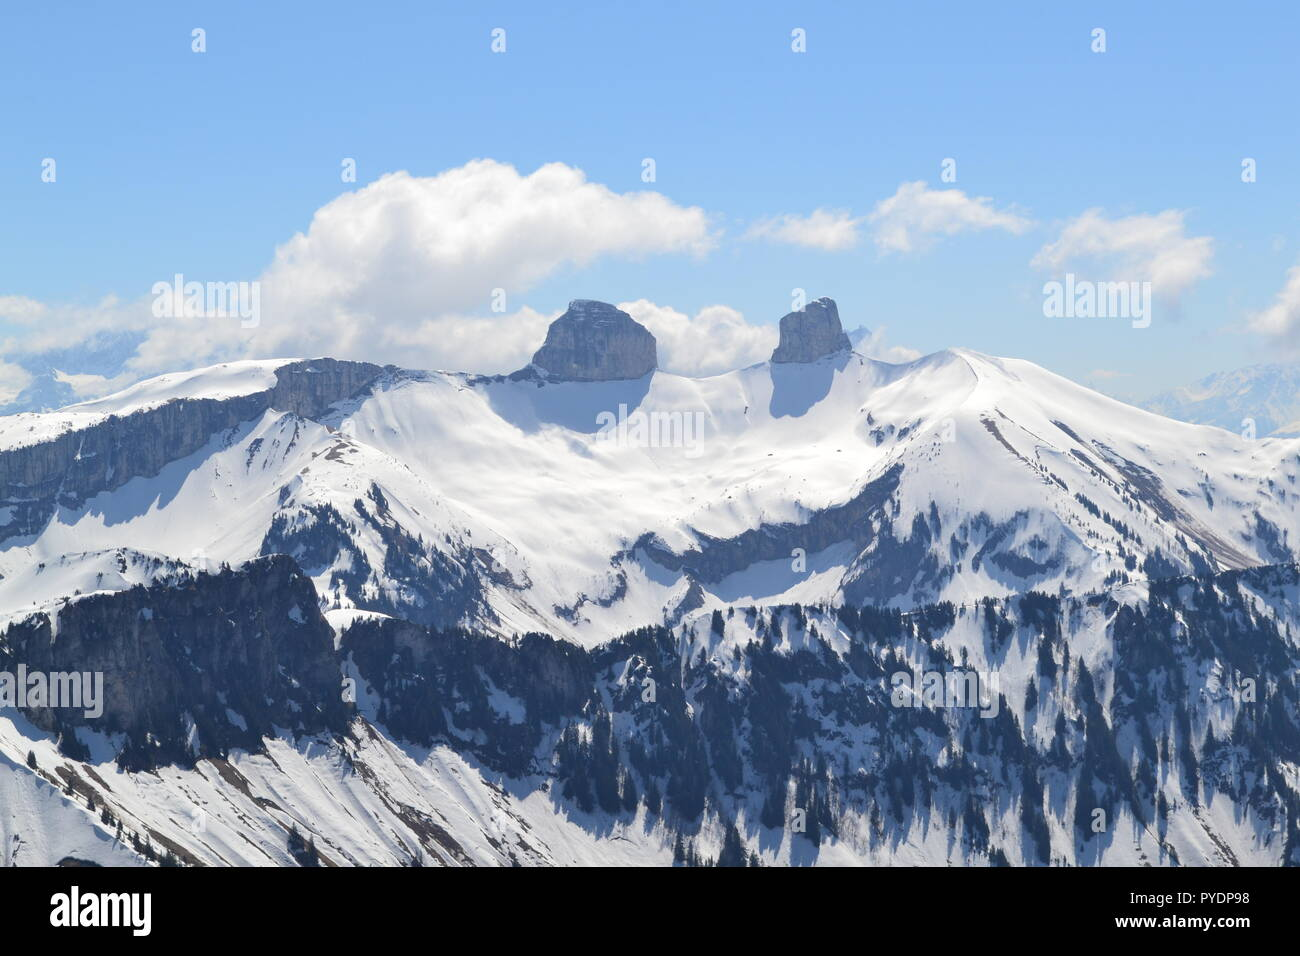 View from Les Rochers de Naye, reached by MOB train from Montreux. Tour d'Aï and Dent de Corjon are in the foreground. Heavy April snow has fallen. - Stock Image